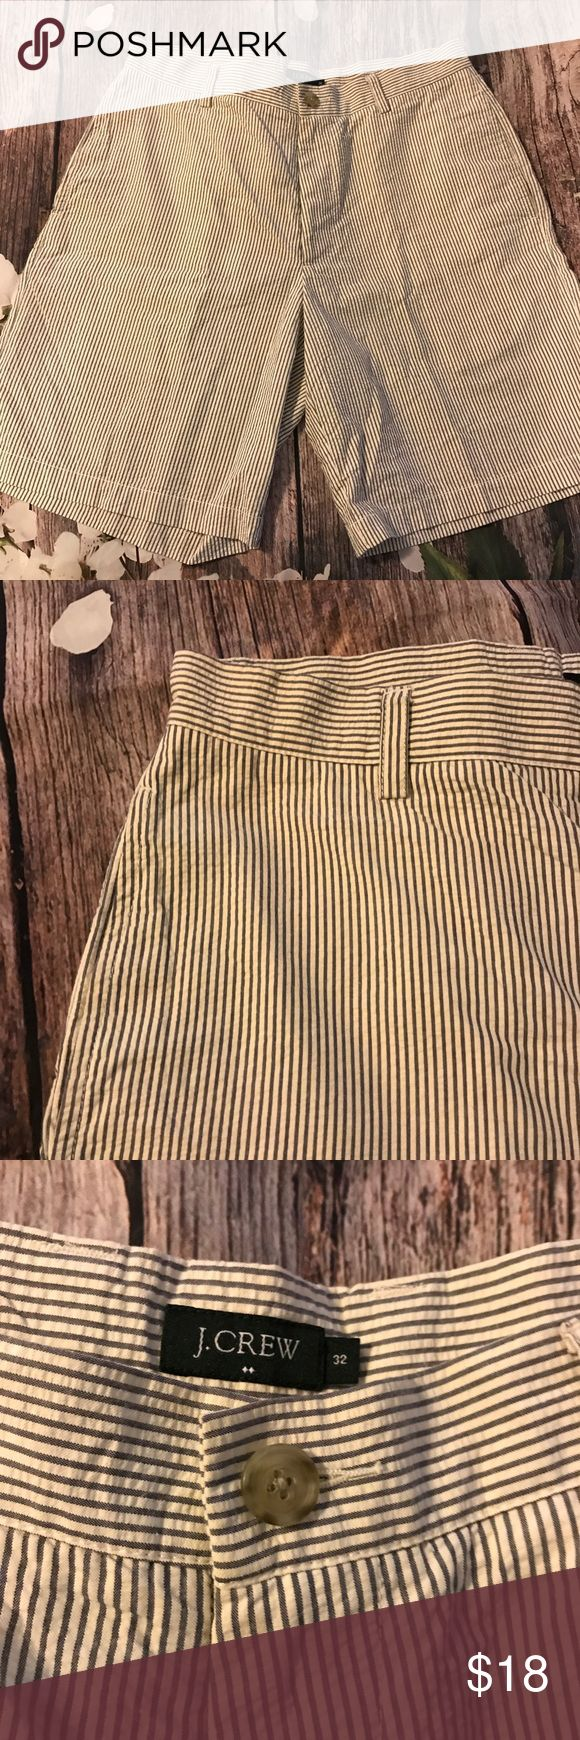 J.crew stripped shorts Size 32 striped men's shorts good condition J. Crew Shorts